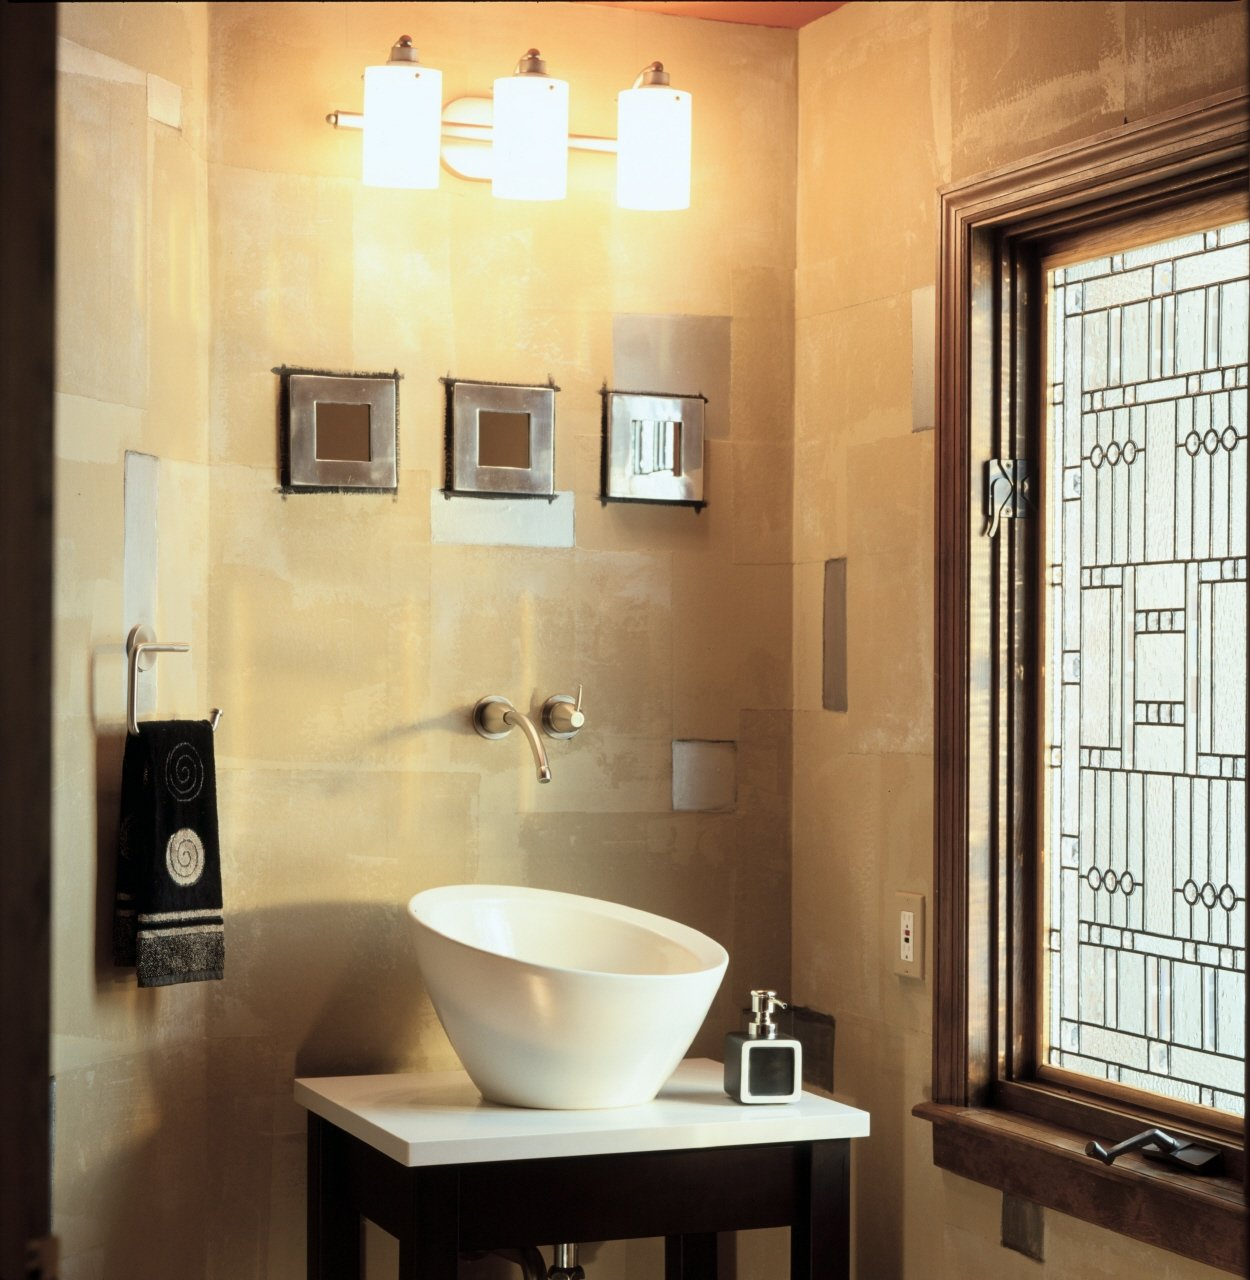 Half bath design ideas home design for Half bathroom designs